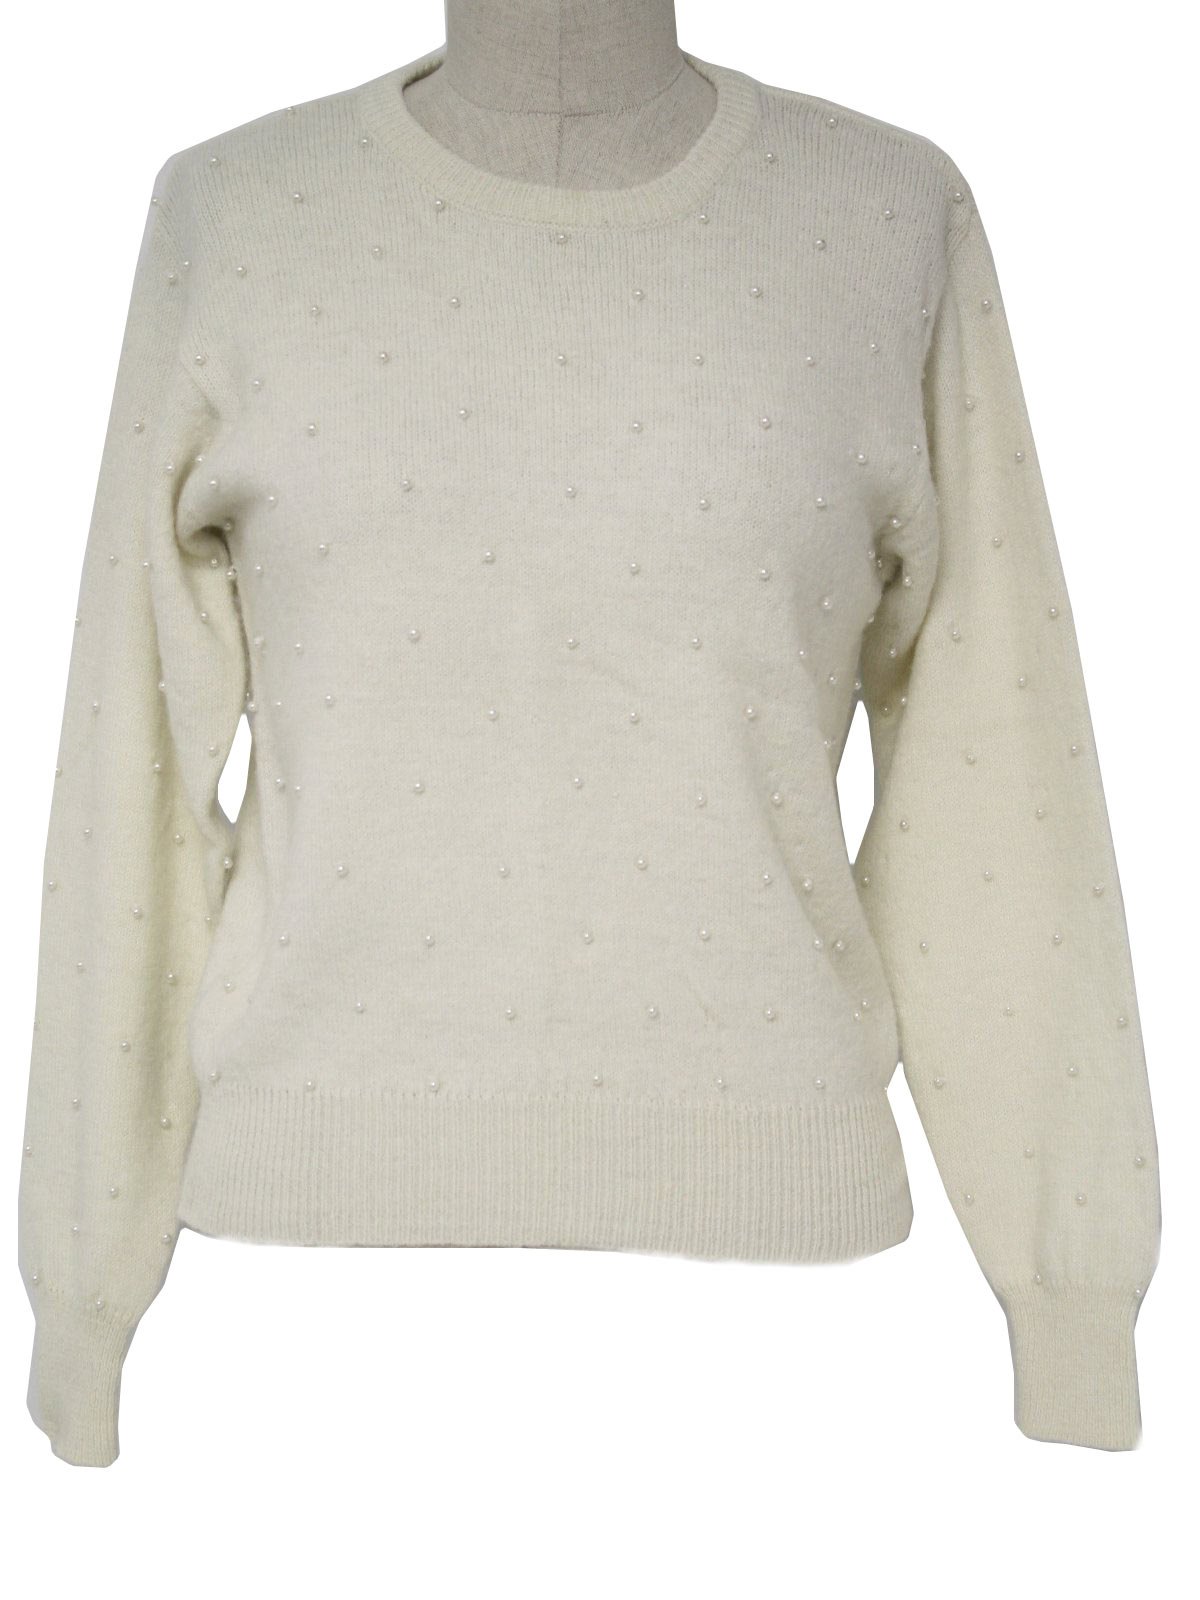 Retro 1960s Sweater: 60s -Andrea Gayle- Womens winter white soft ...